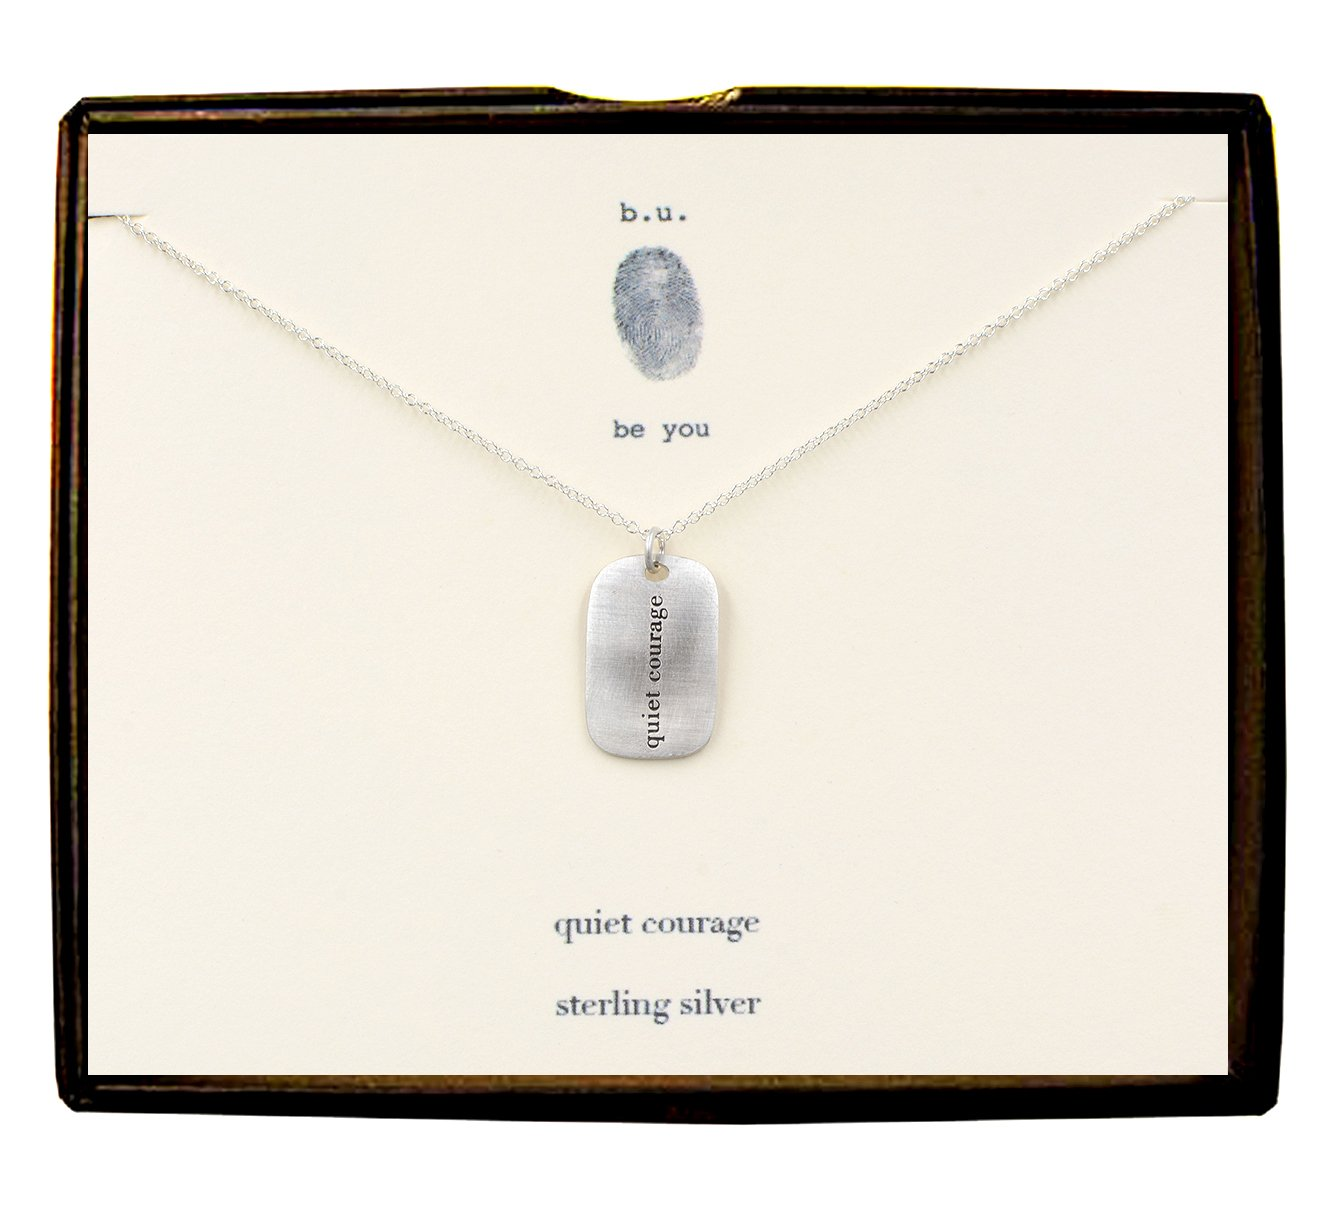 Quiet Courage Necklace made in USA